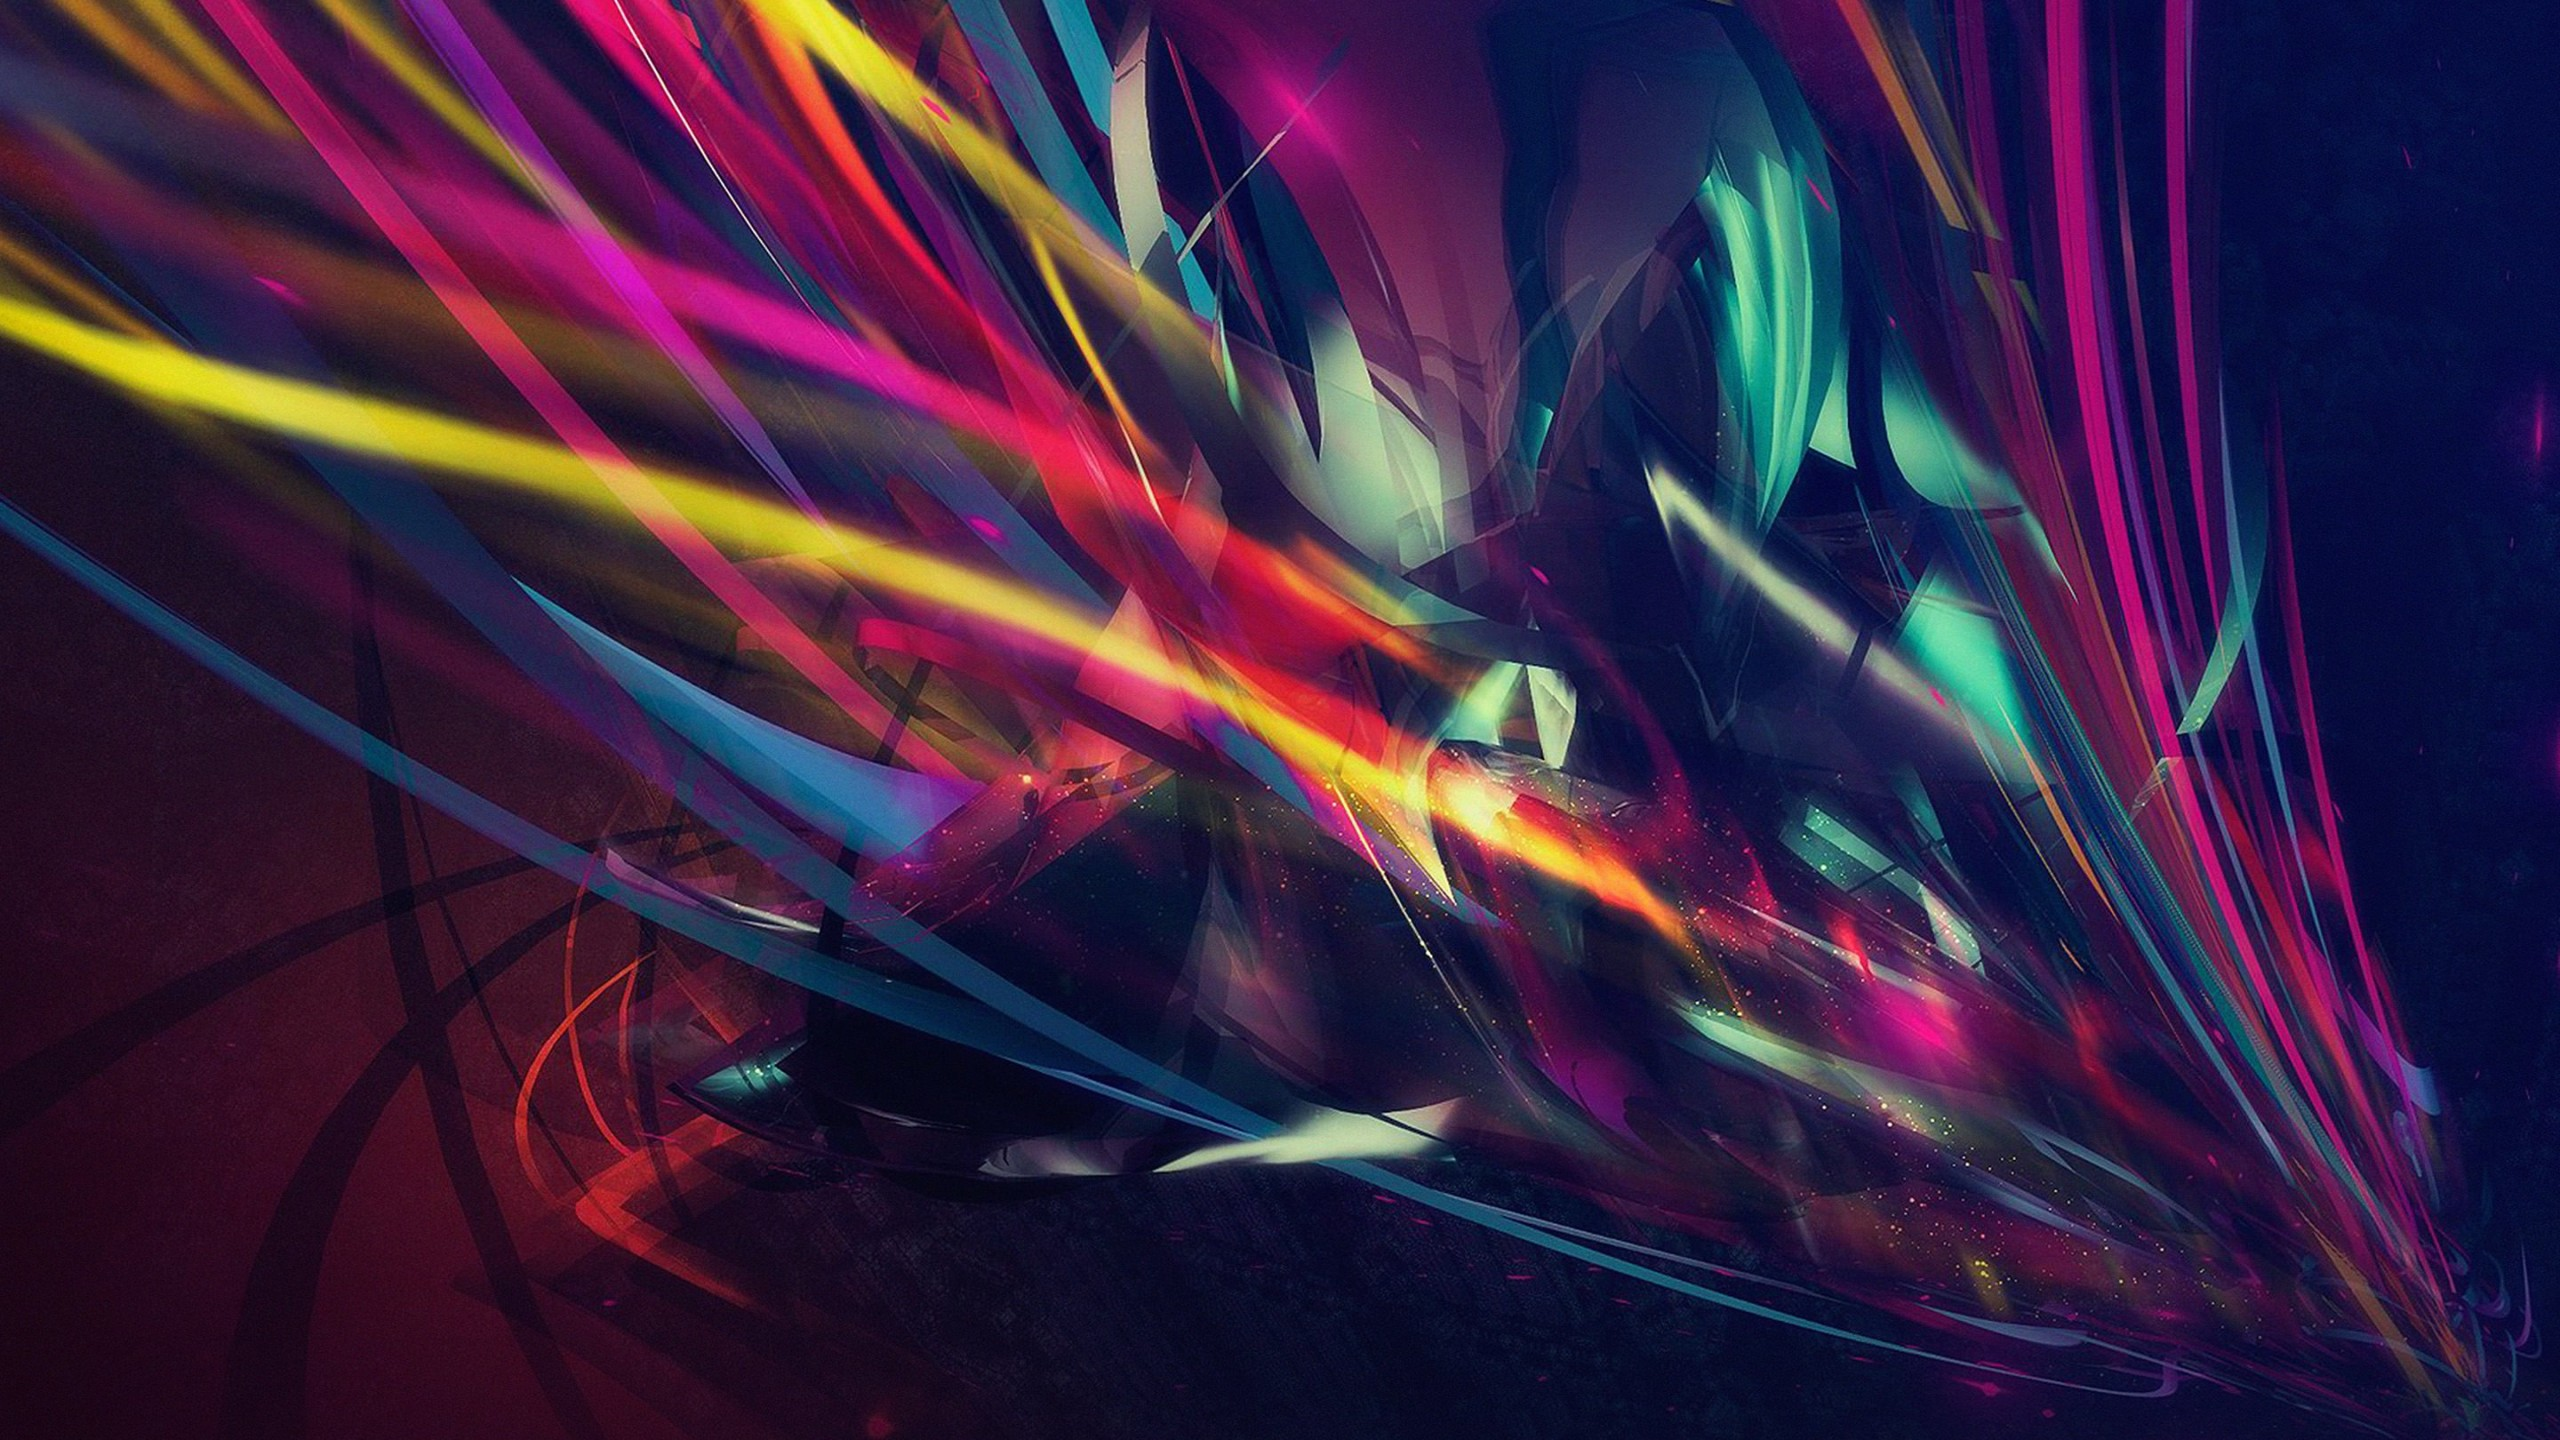 Abstract Multi Color Lines Wallpaper for Desktop 2560x1440